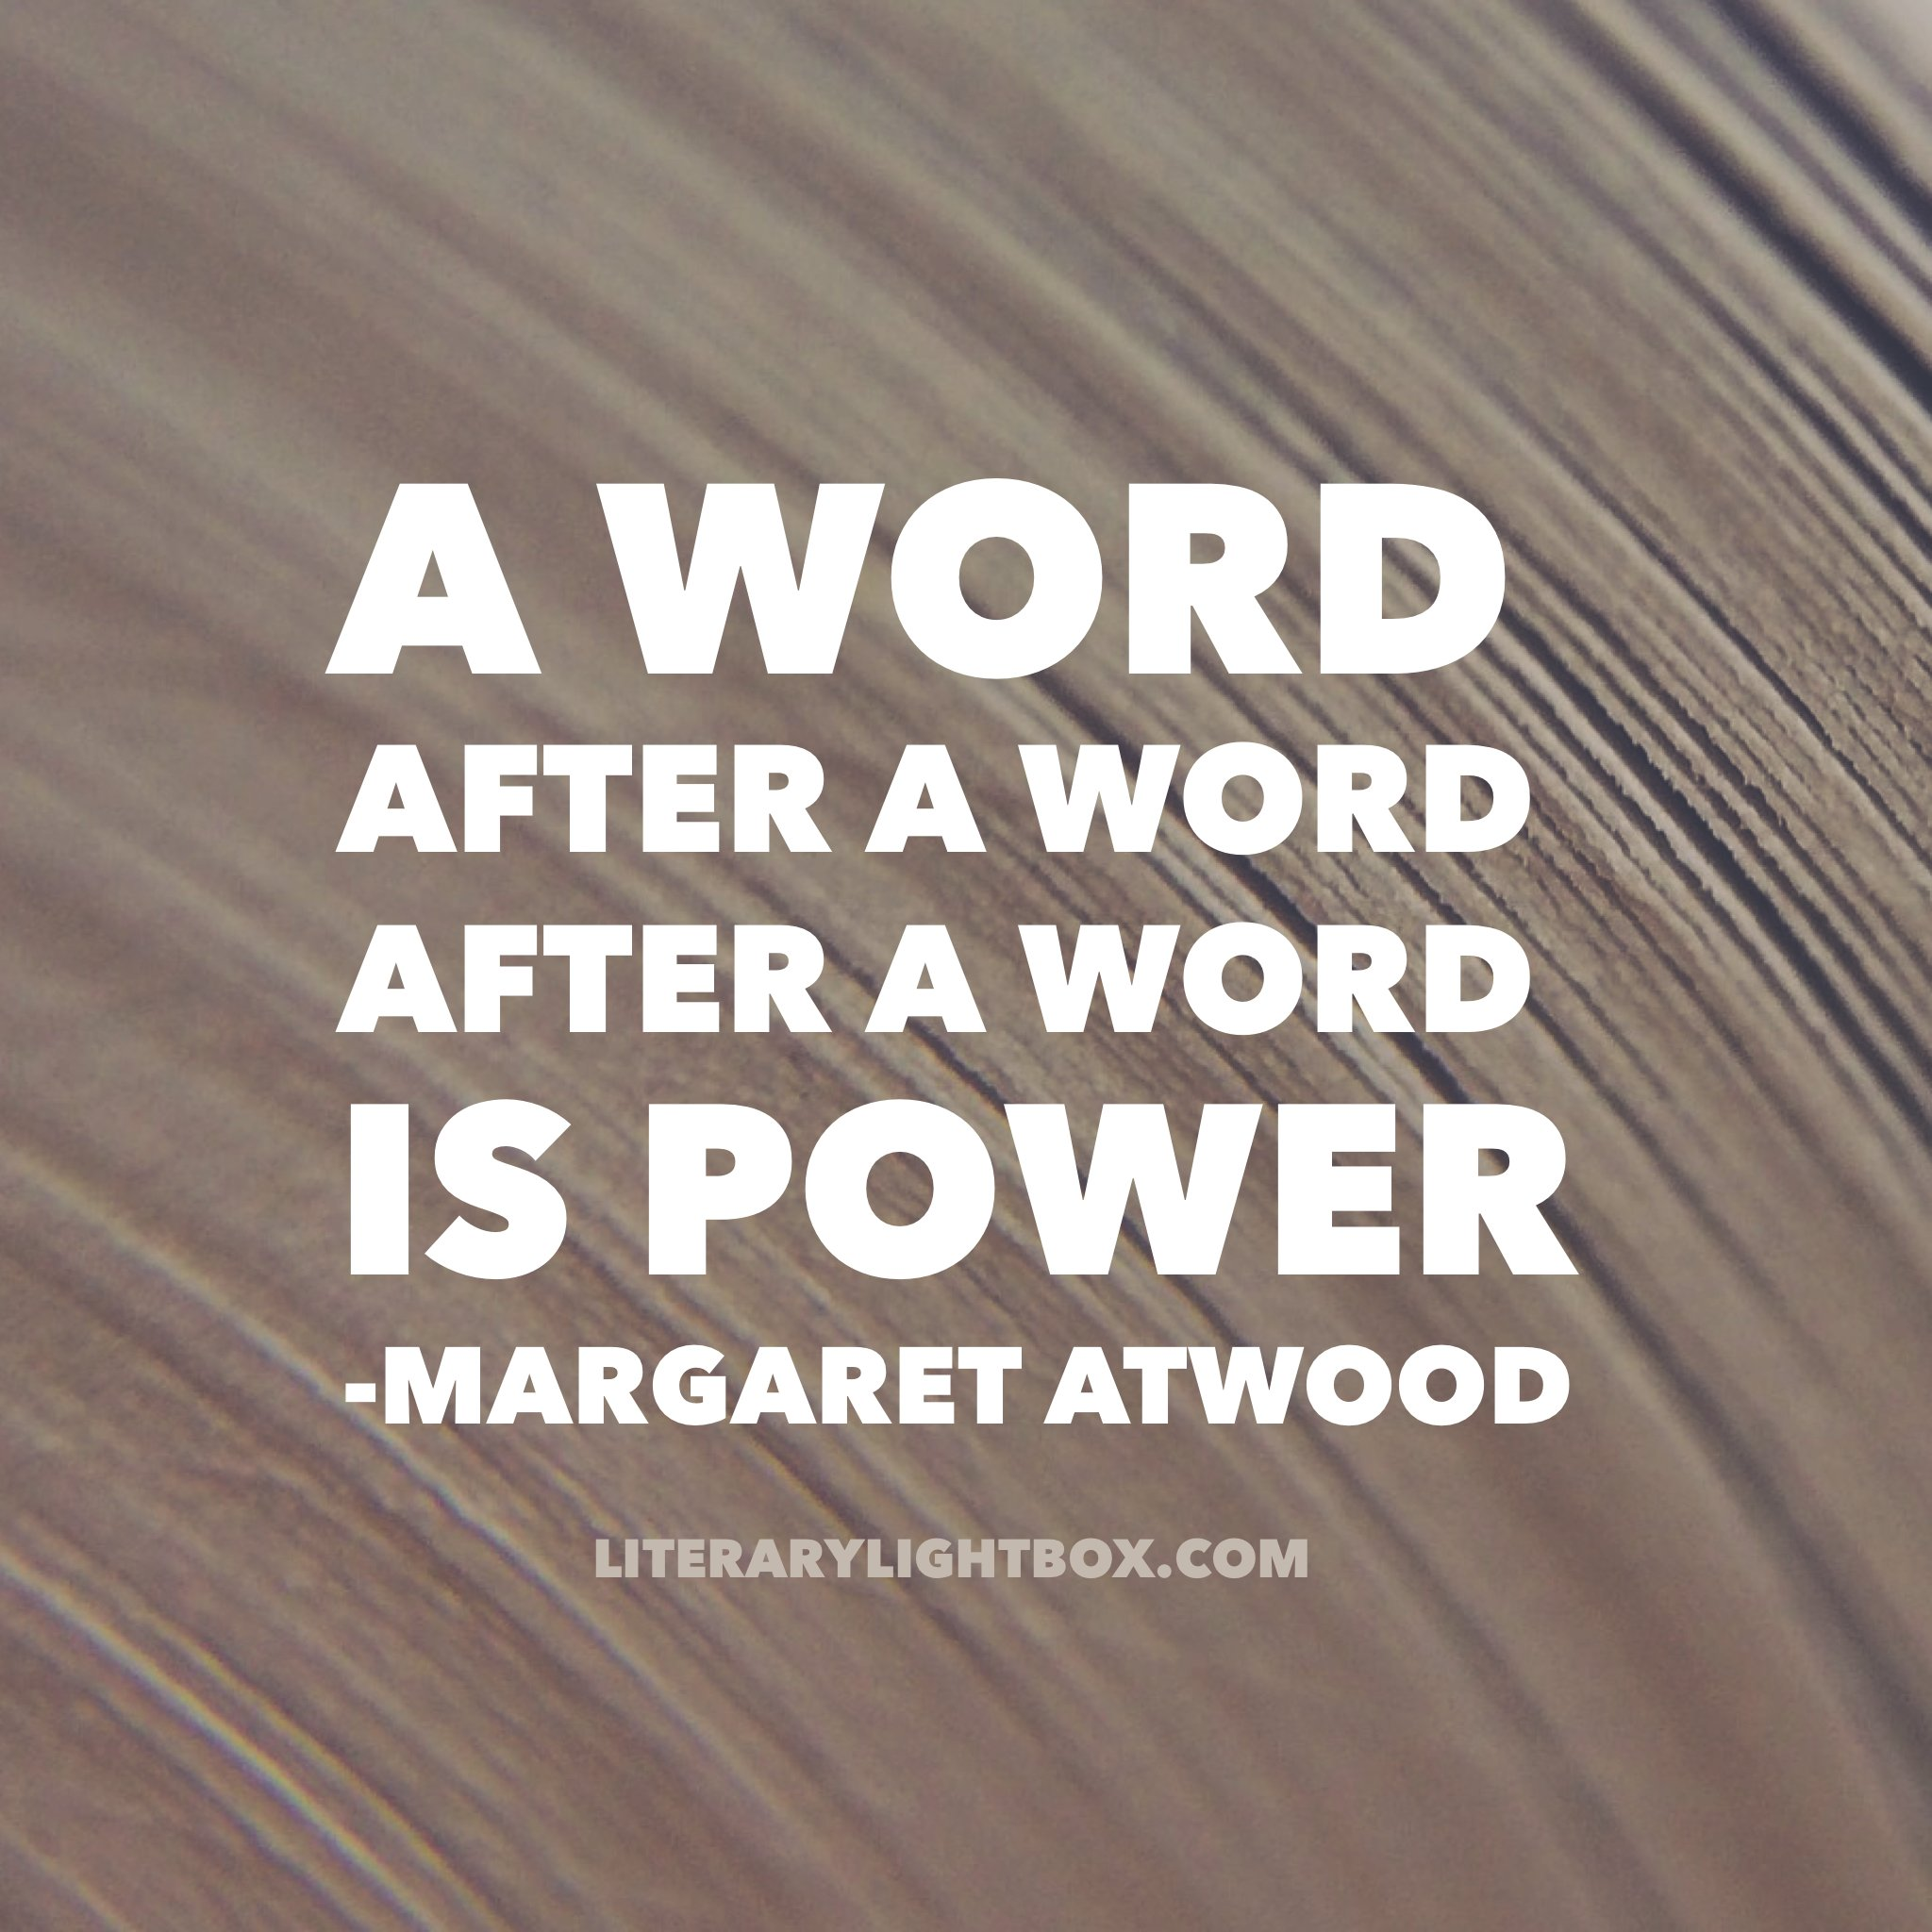 """""""A word after a word after a word is power."""" - Margaret Atwood #quoteoftheday #amwriting #books #nanowrimo https://t.co/uWungpz4j5"""